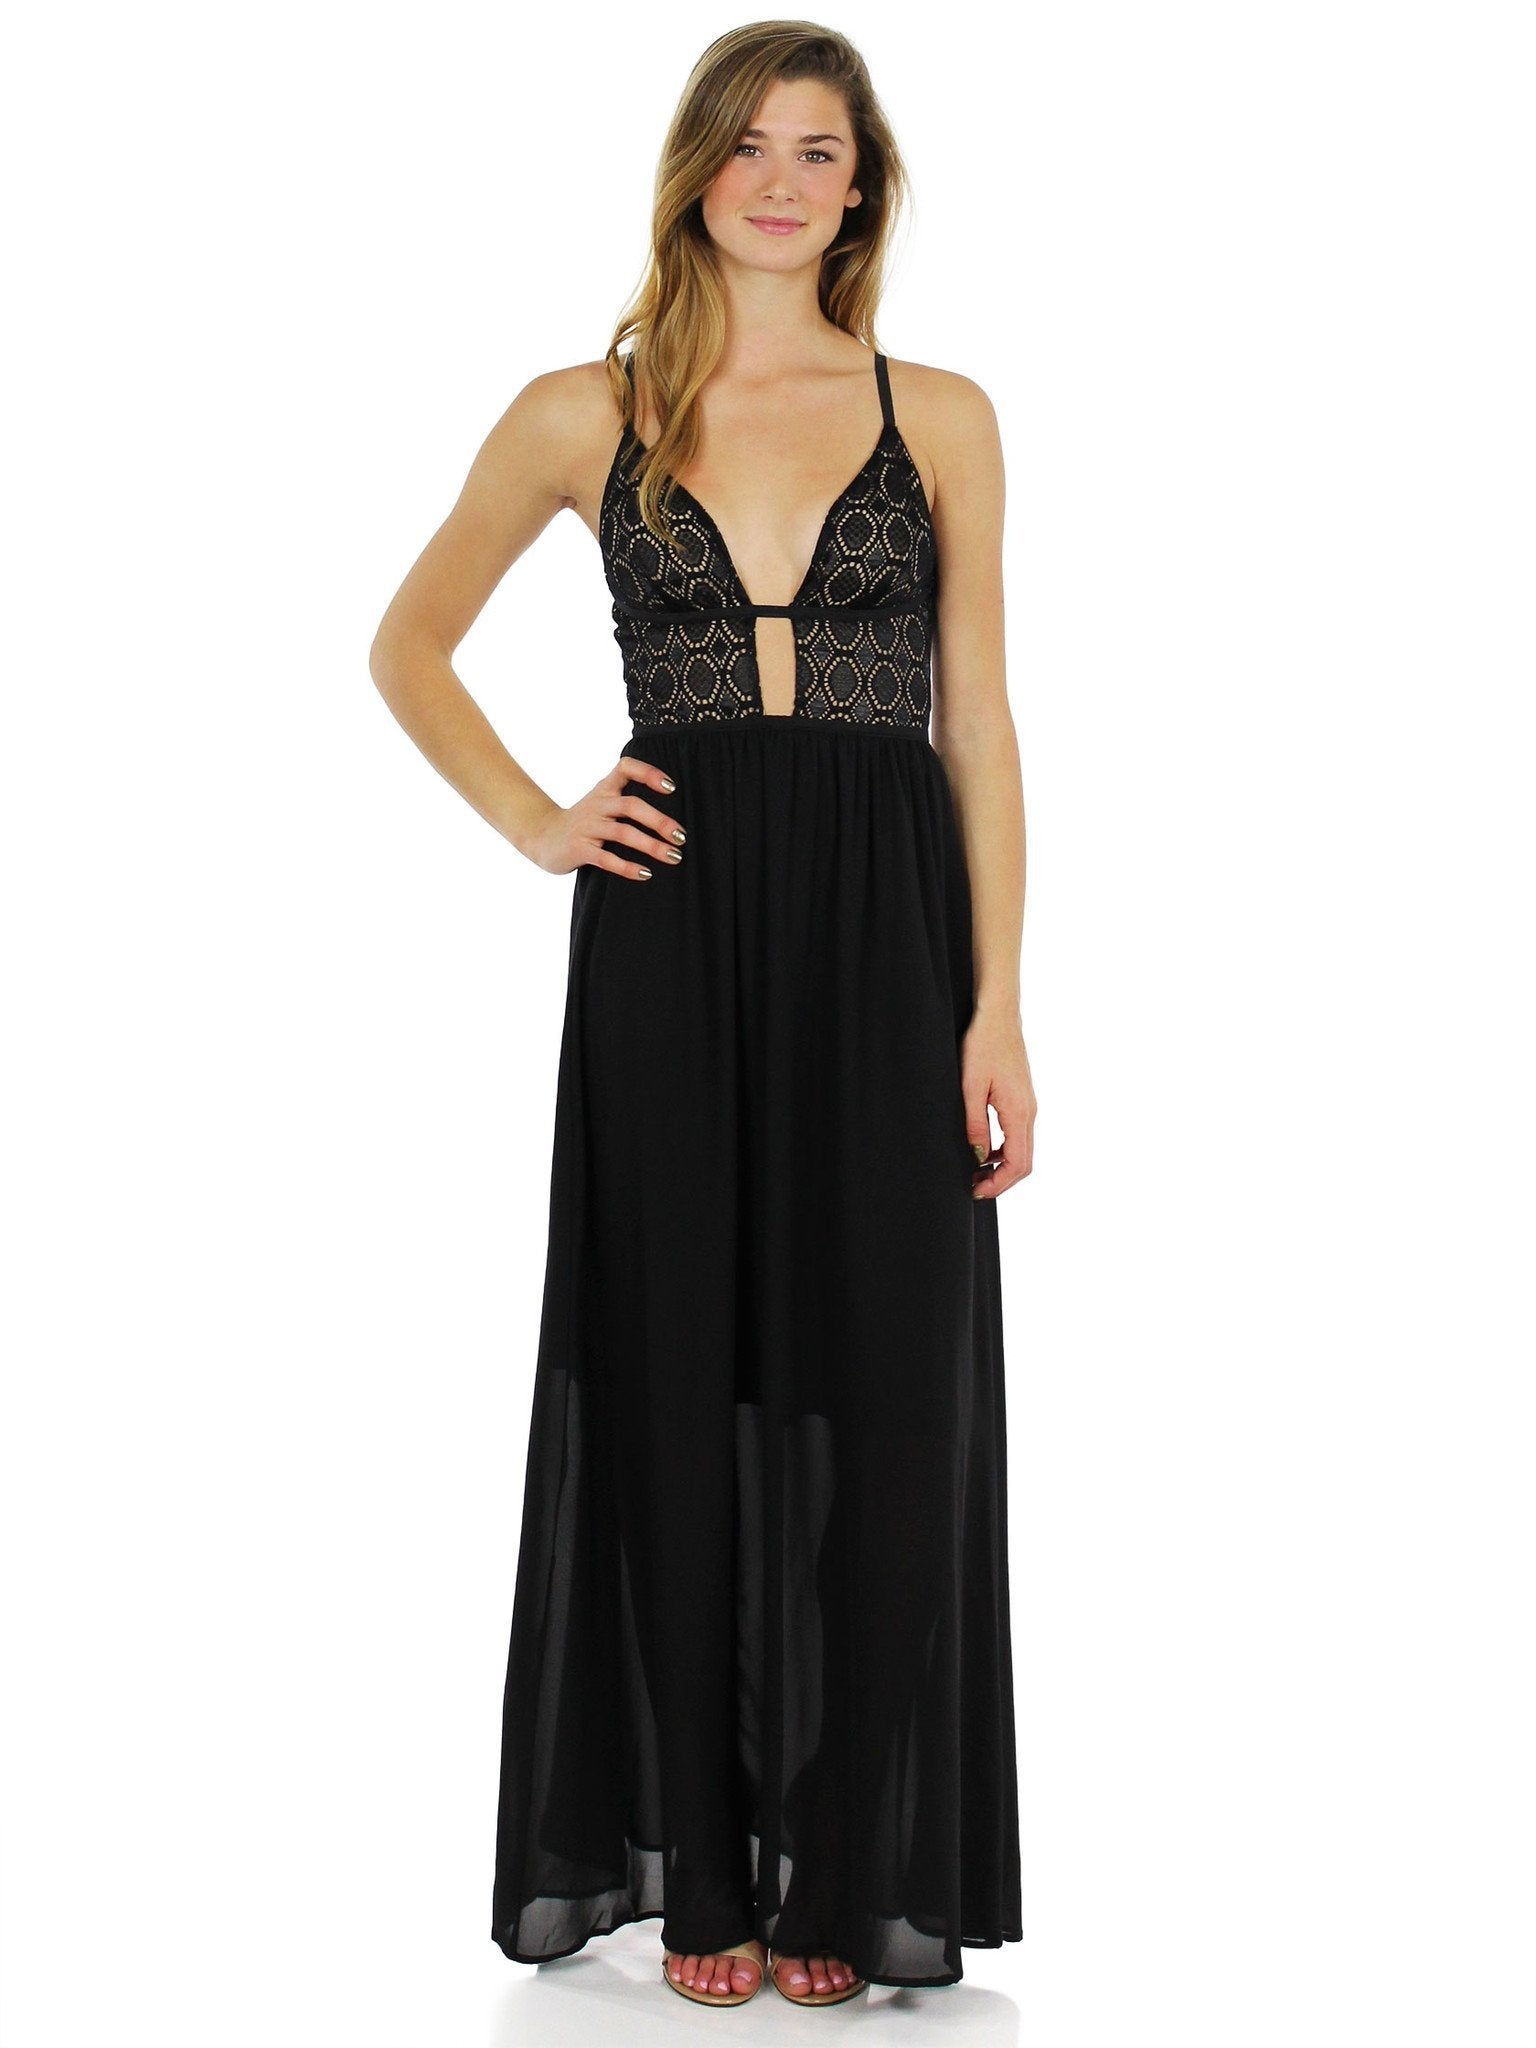 Women outfit in a dress rental from WYLDR called Last Night Maxi Dress